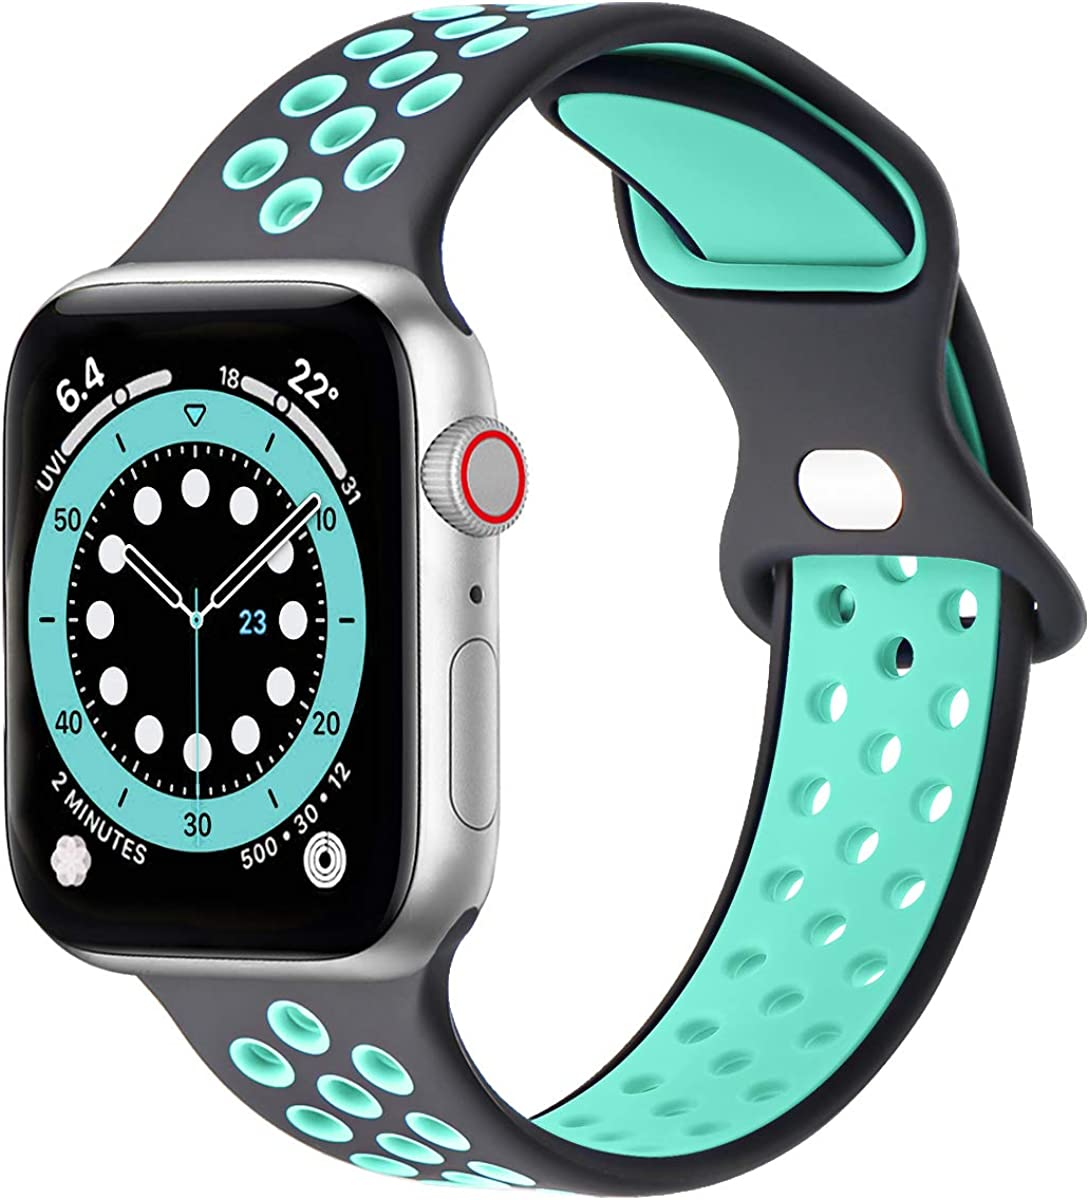 GROGON Compatible with Apple Watch Bands 44mm 42mm 40mm 38mm for Men Women, 10 Pack Silicone Sport Bands Waterproof Breathable Soft Replacement Wristband Strap for iWatch SE Series /6/5/4/3/2/1